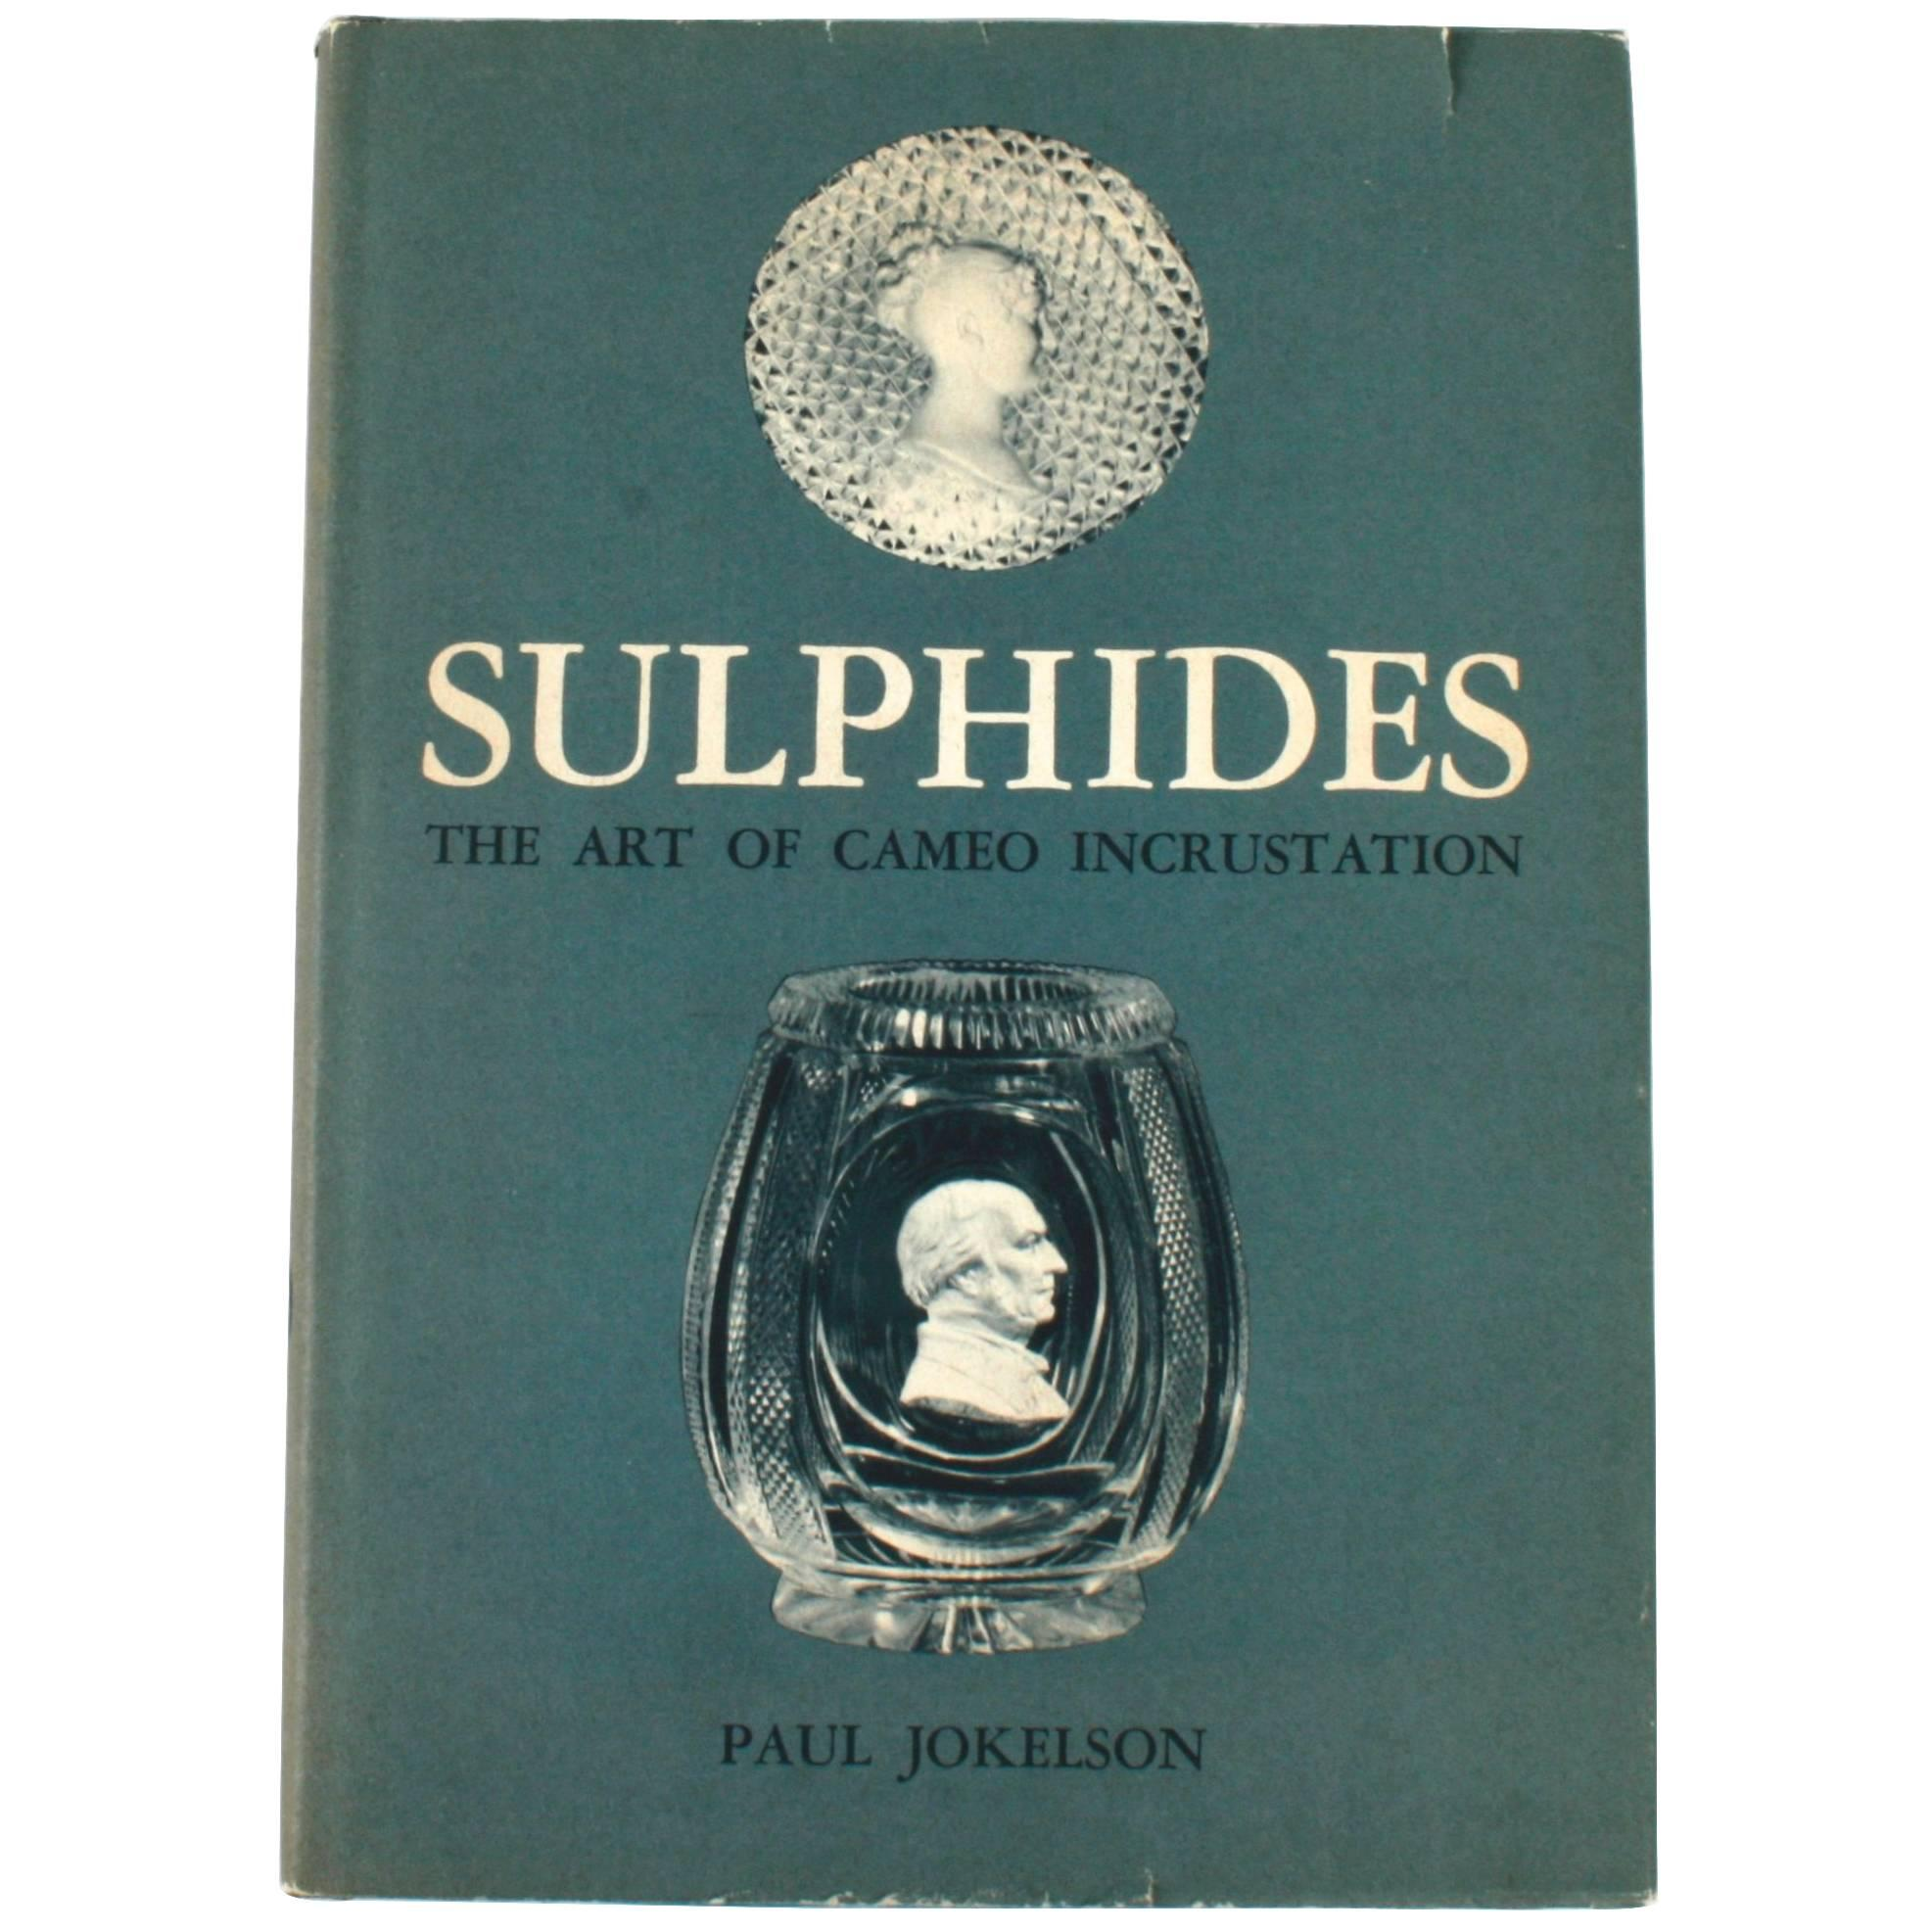 Sulphides, The Art of Cameo Incrustation, First Edition